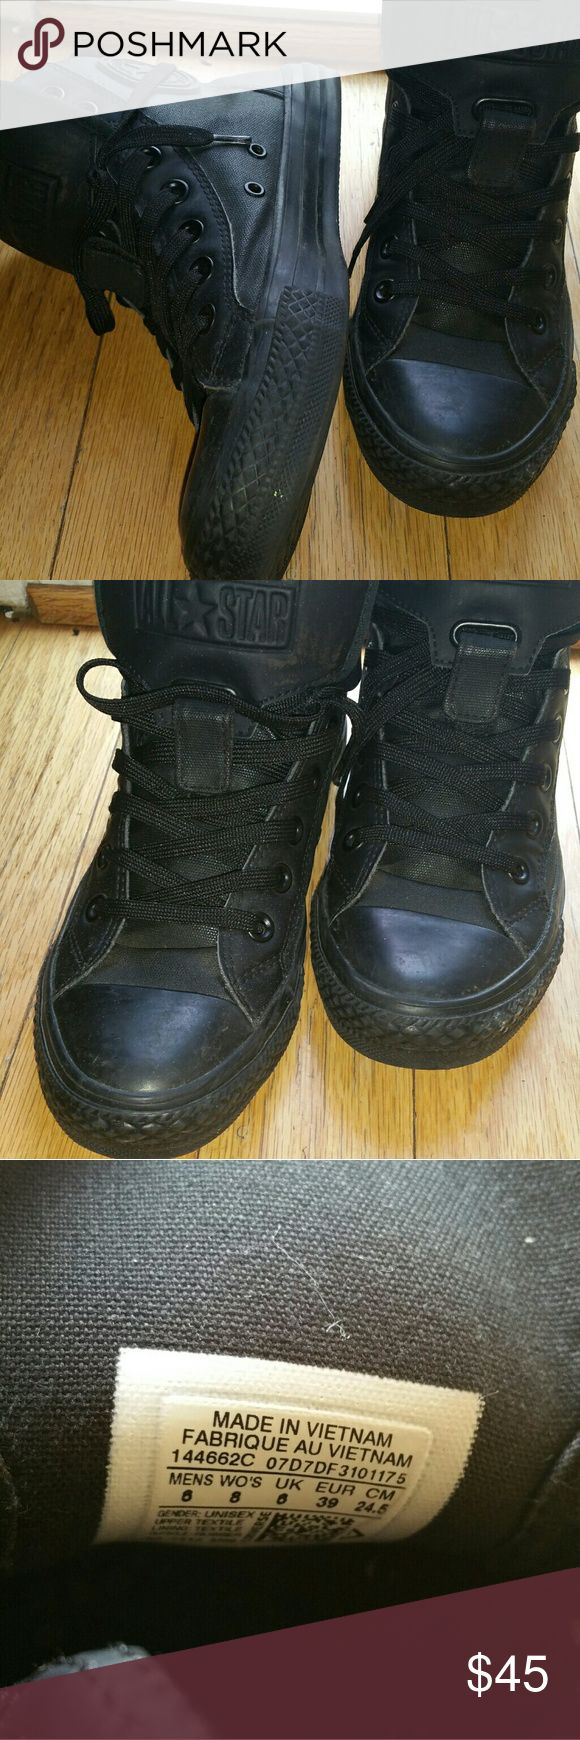 Converse High tops Black converse. Barely worn. In excellent condition. Women's 8. Converse Shoes